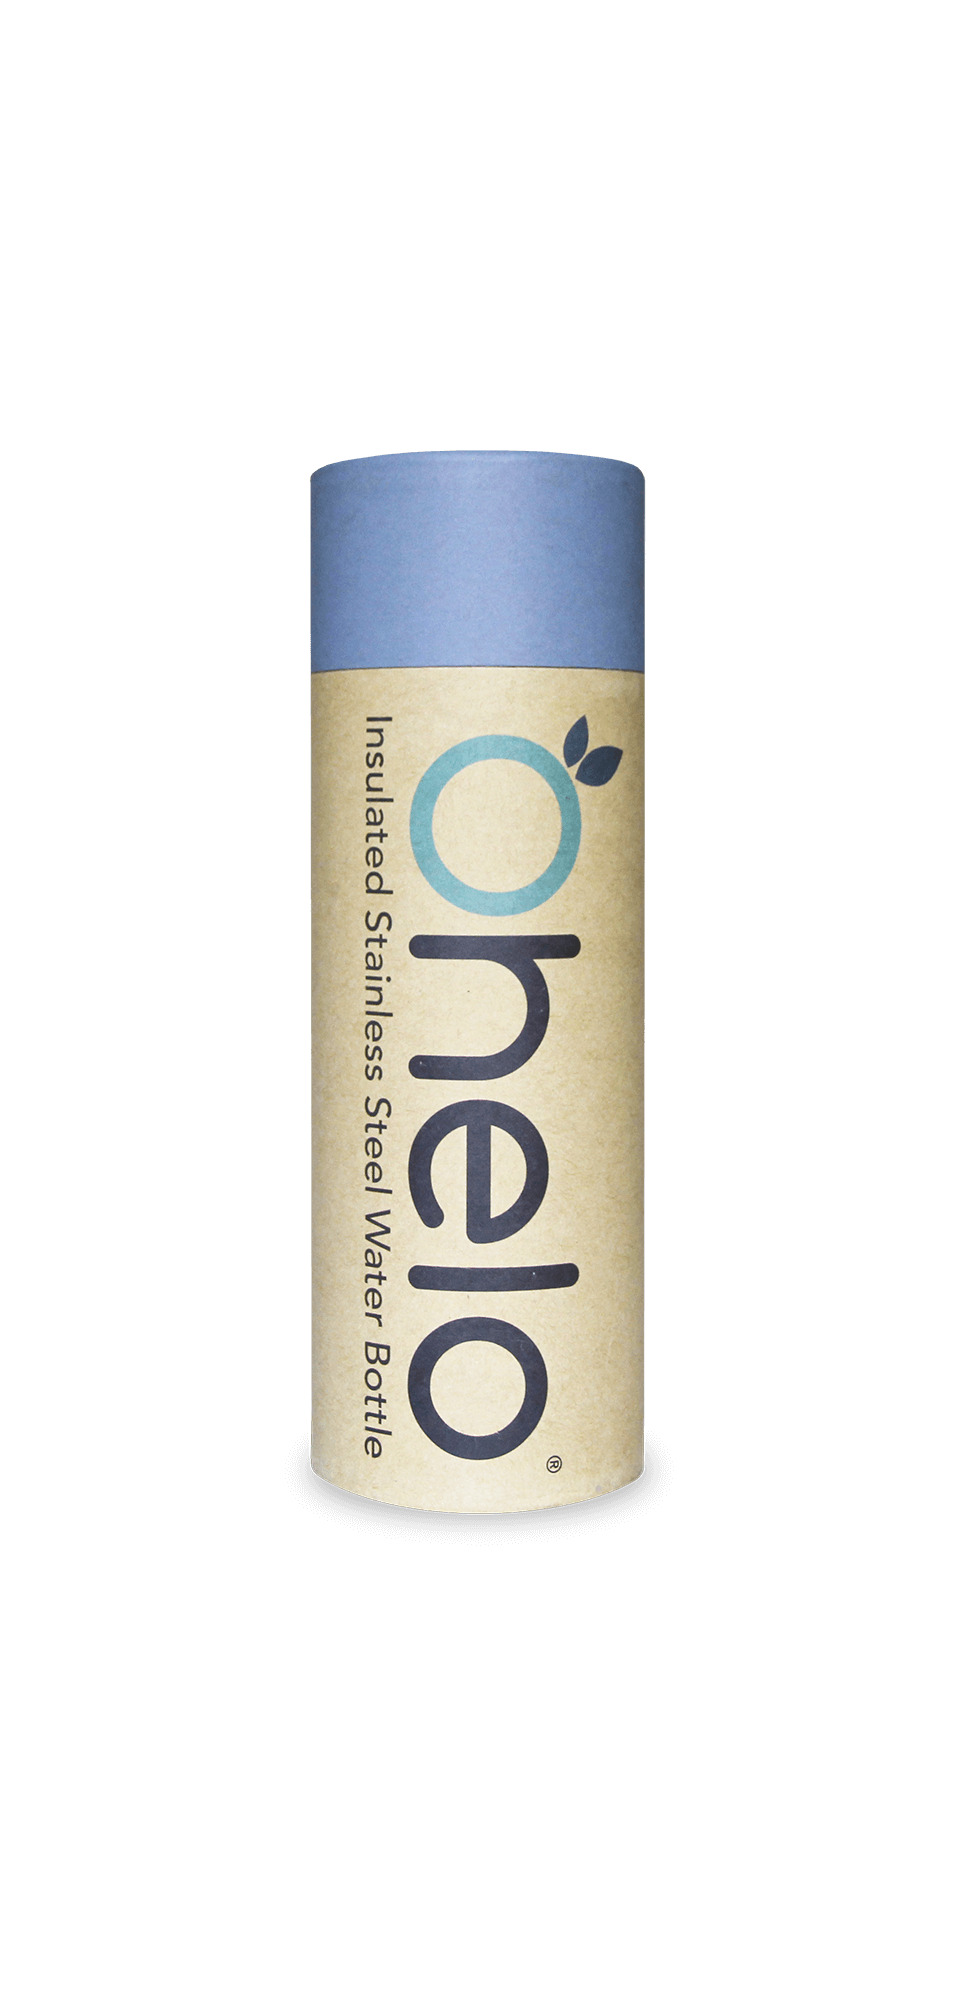 Ohelo blue water bottle box